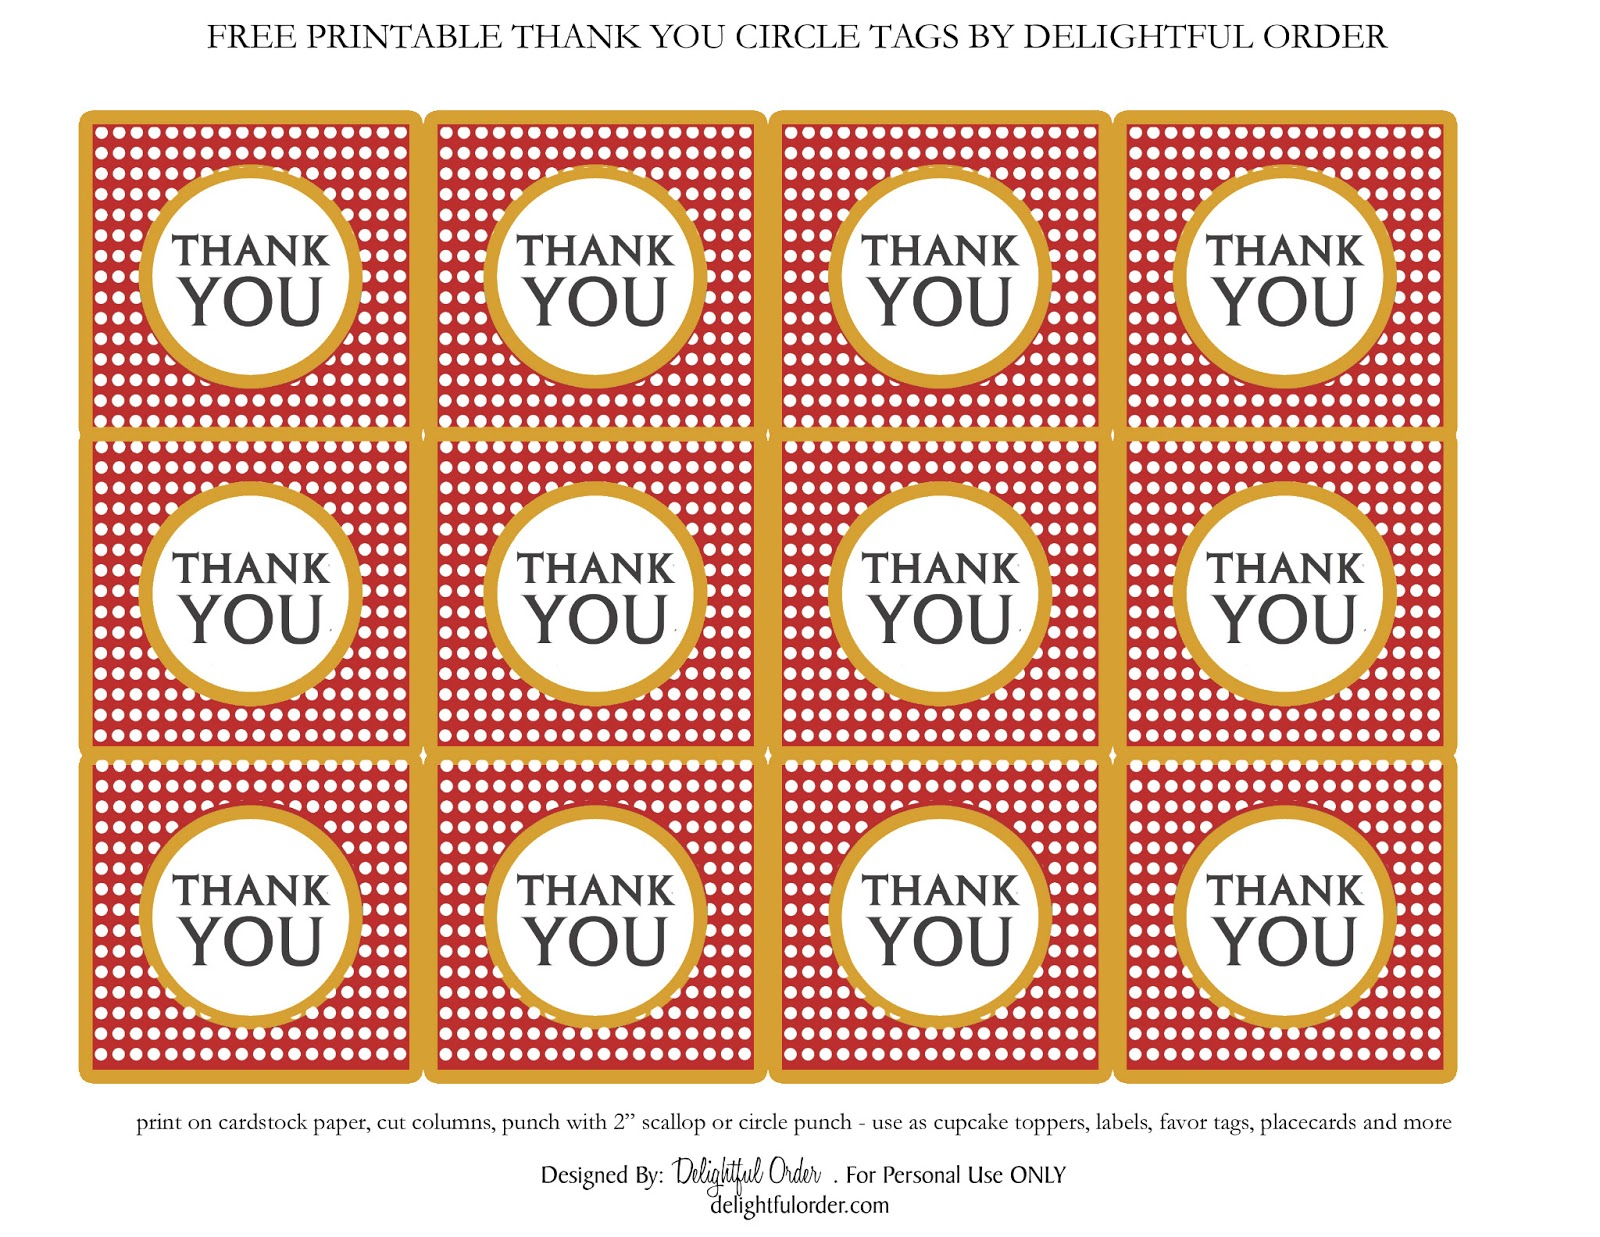 Delightful Order: Free Printable Thank You Circle Tags